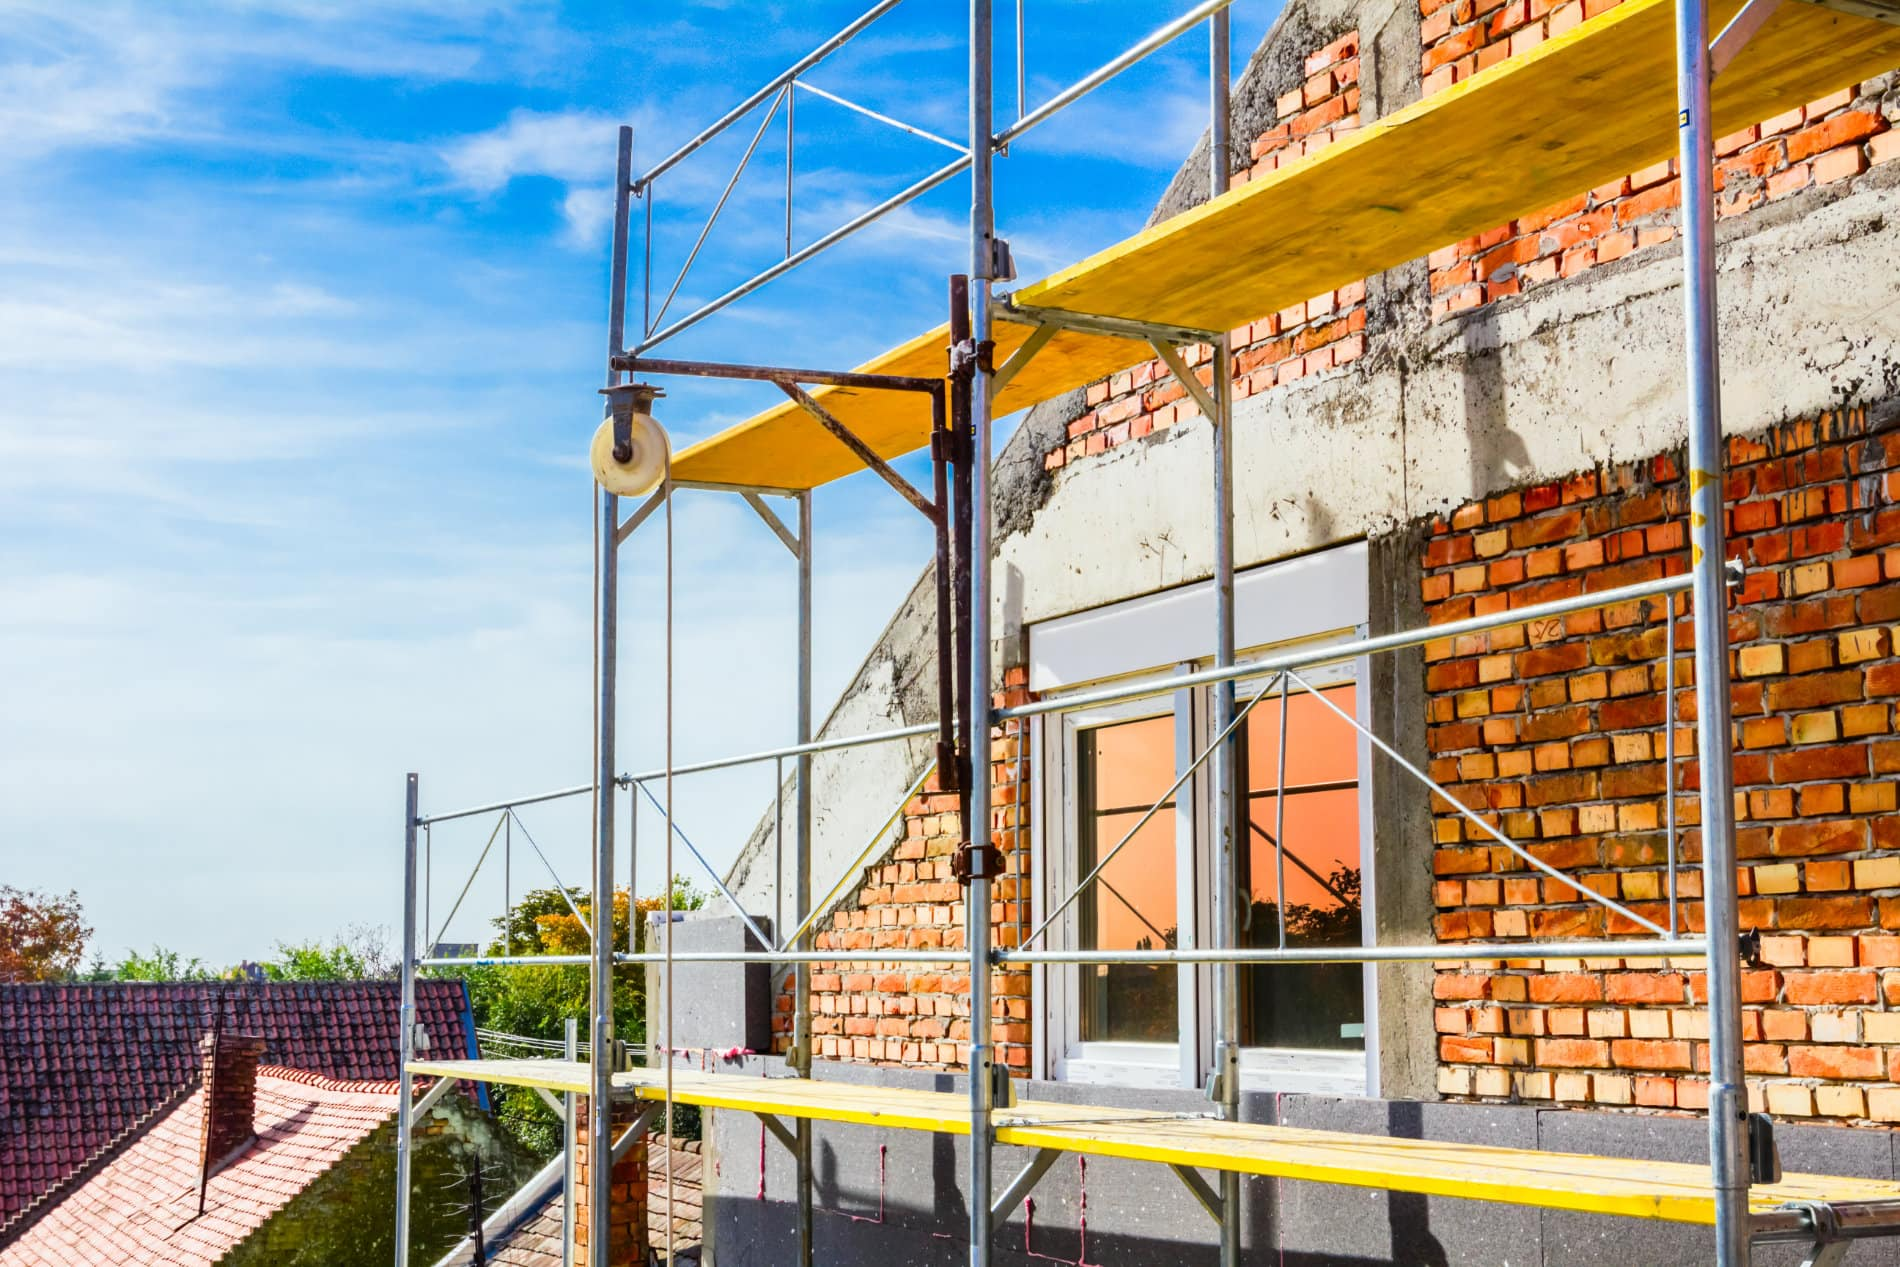 allbright property maintenance Need More Space Should I Stay Or Should I Go